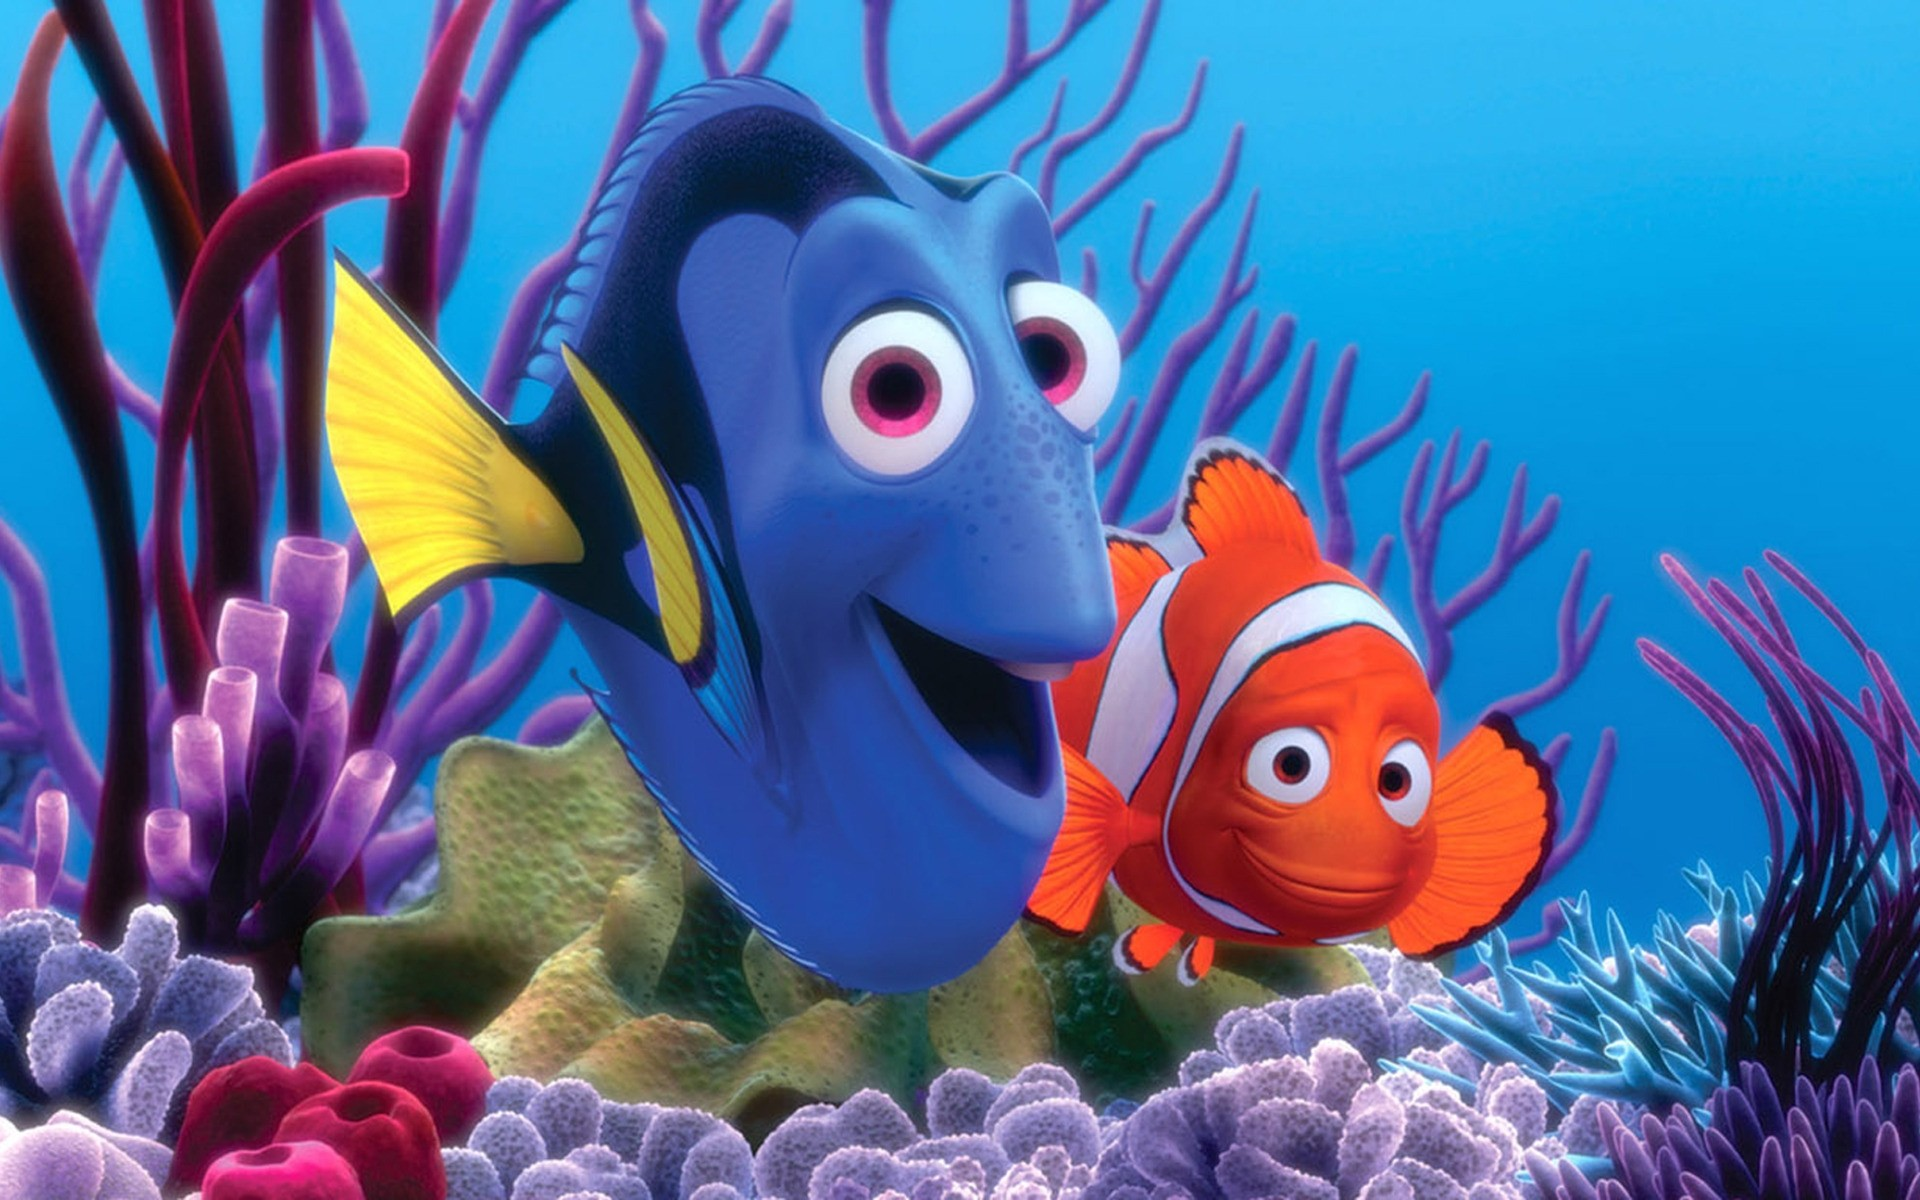 Finding Nemo Fishes Android Wallpapers For Free